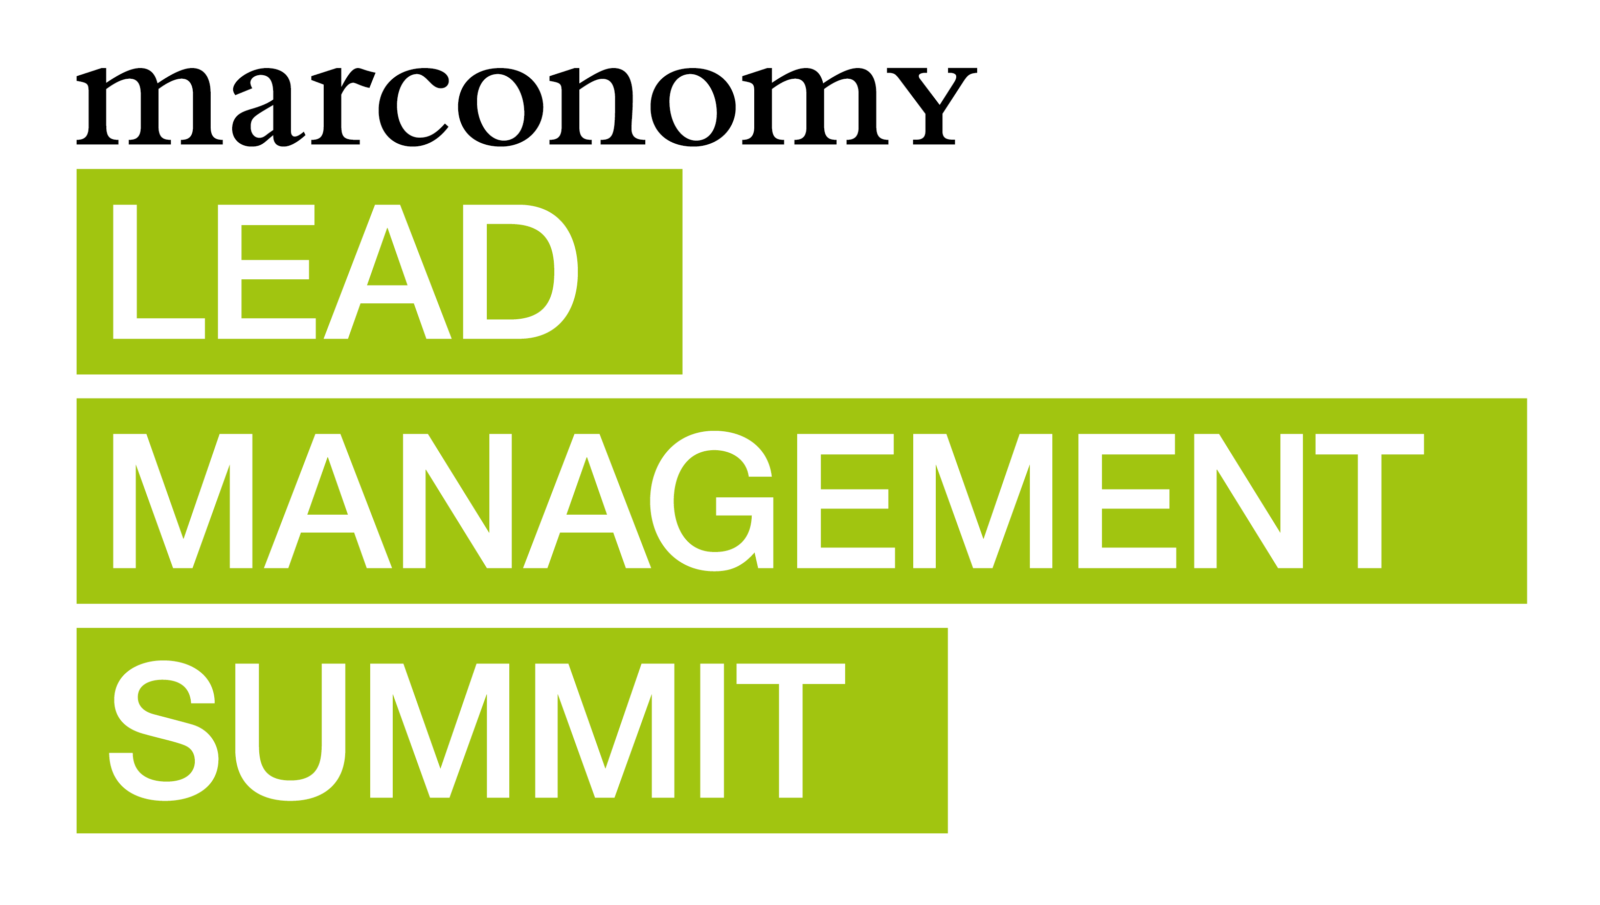 Lead Management Summit 2017